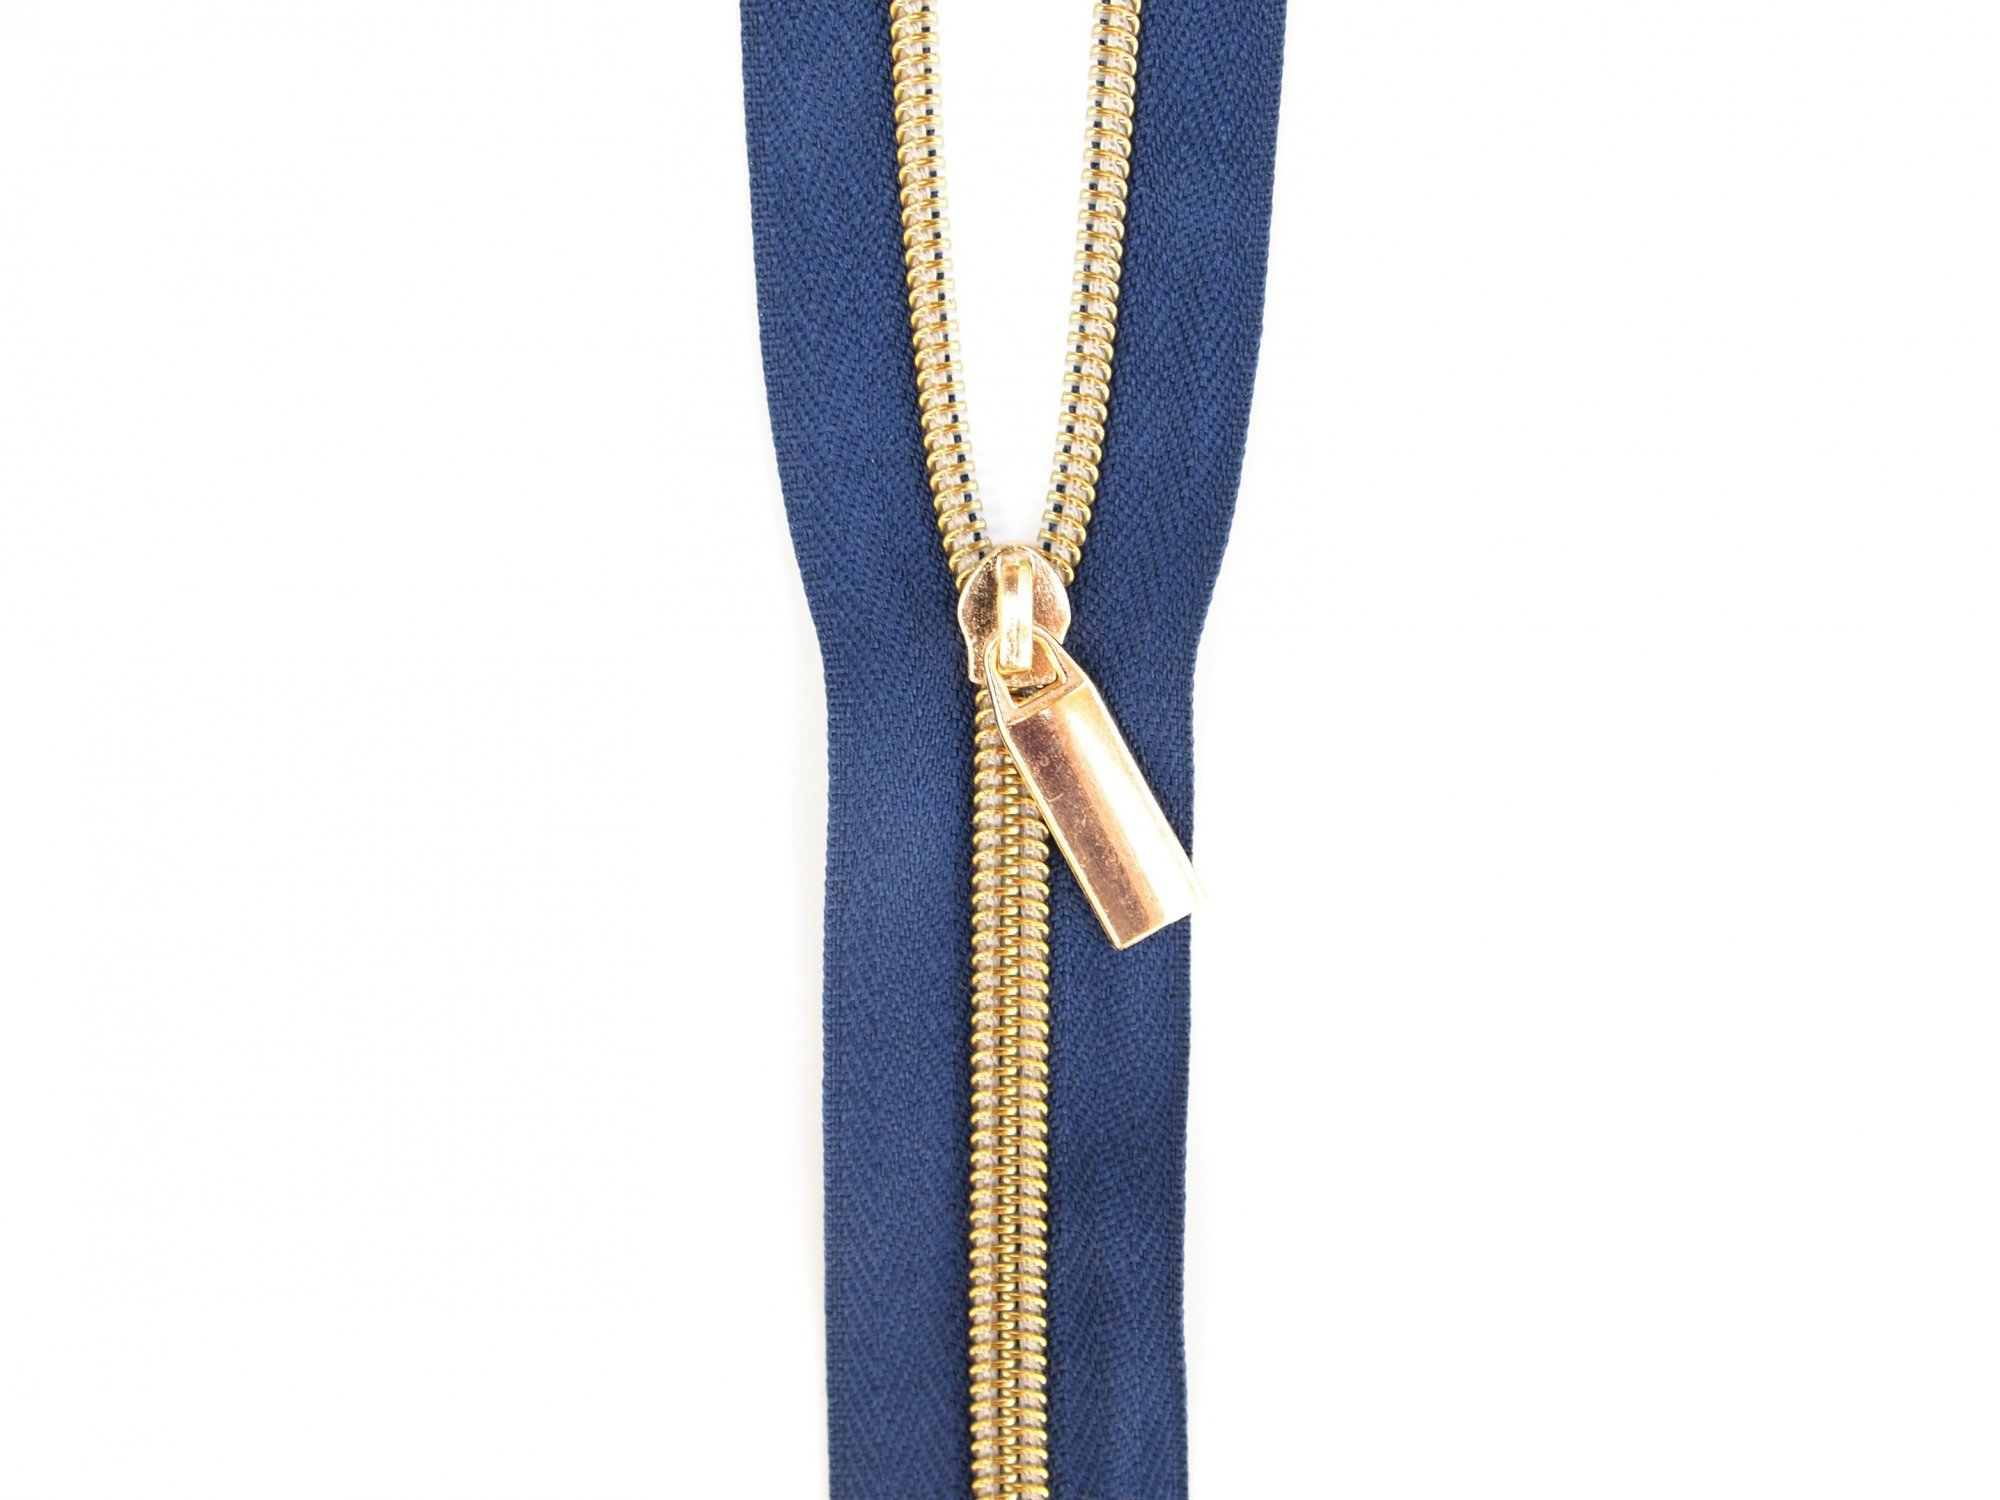 Zipper Tape - Navy Tape & Gold Zipper